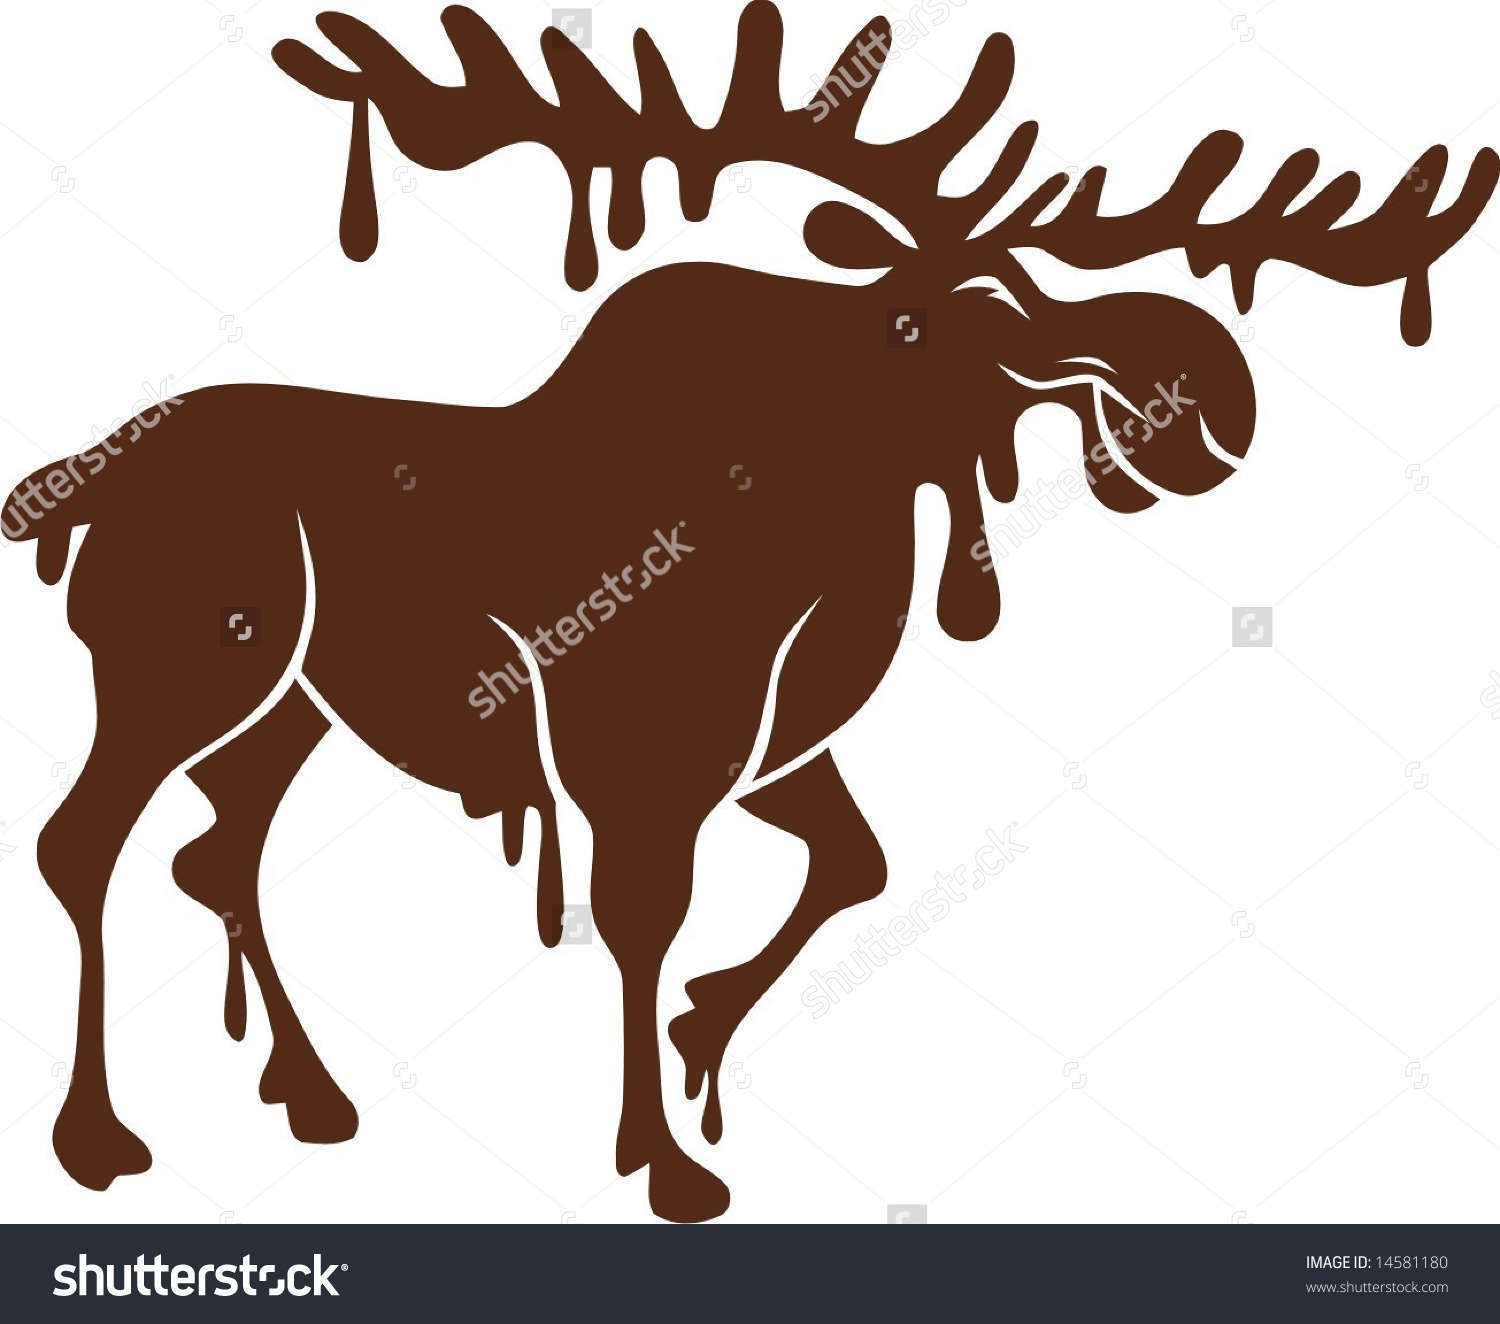 Chocolate Moose Stock Vector 14581180 - Shutterstock